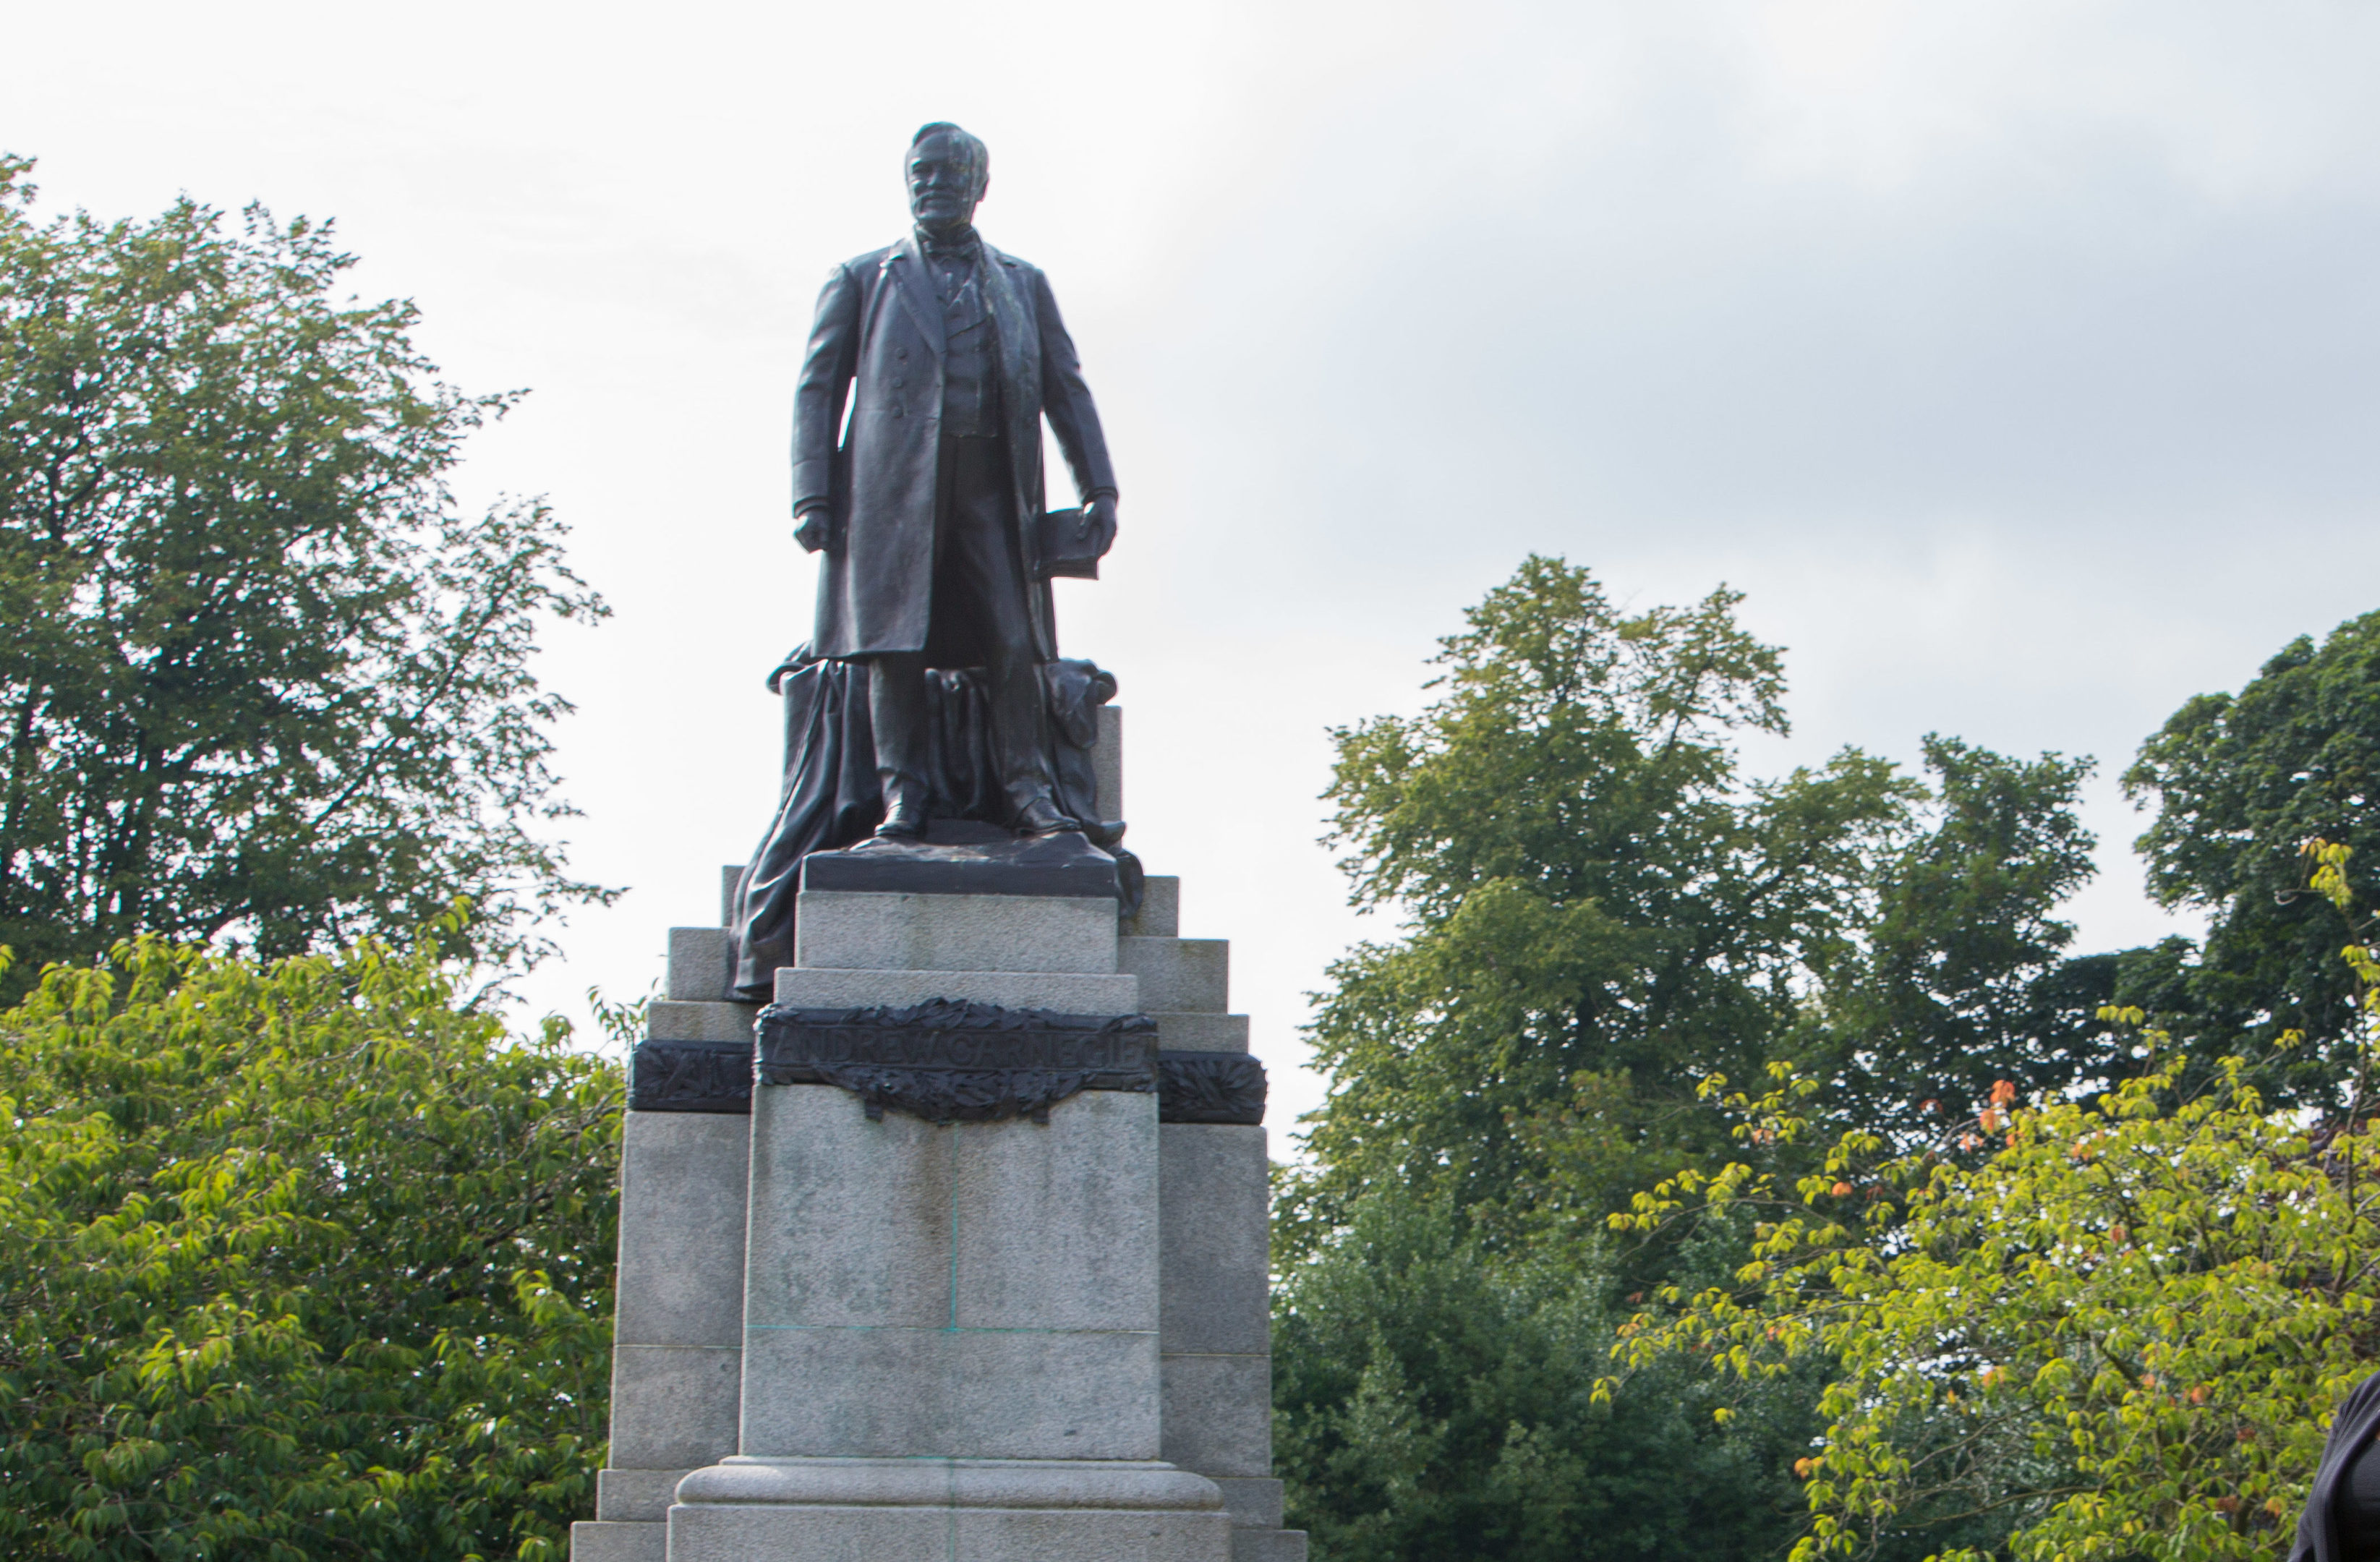 The statue was vandalised on March 31